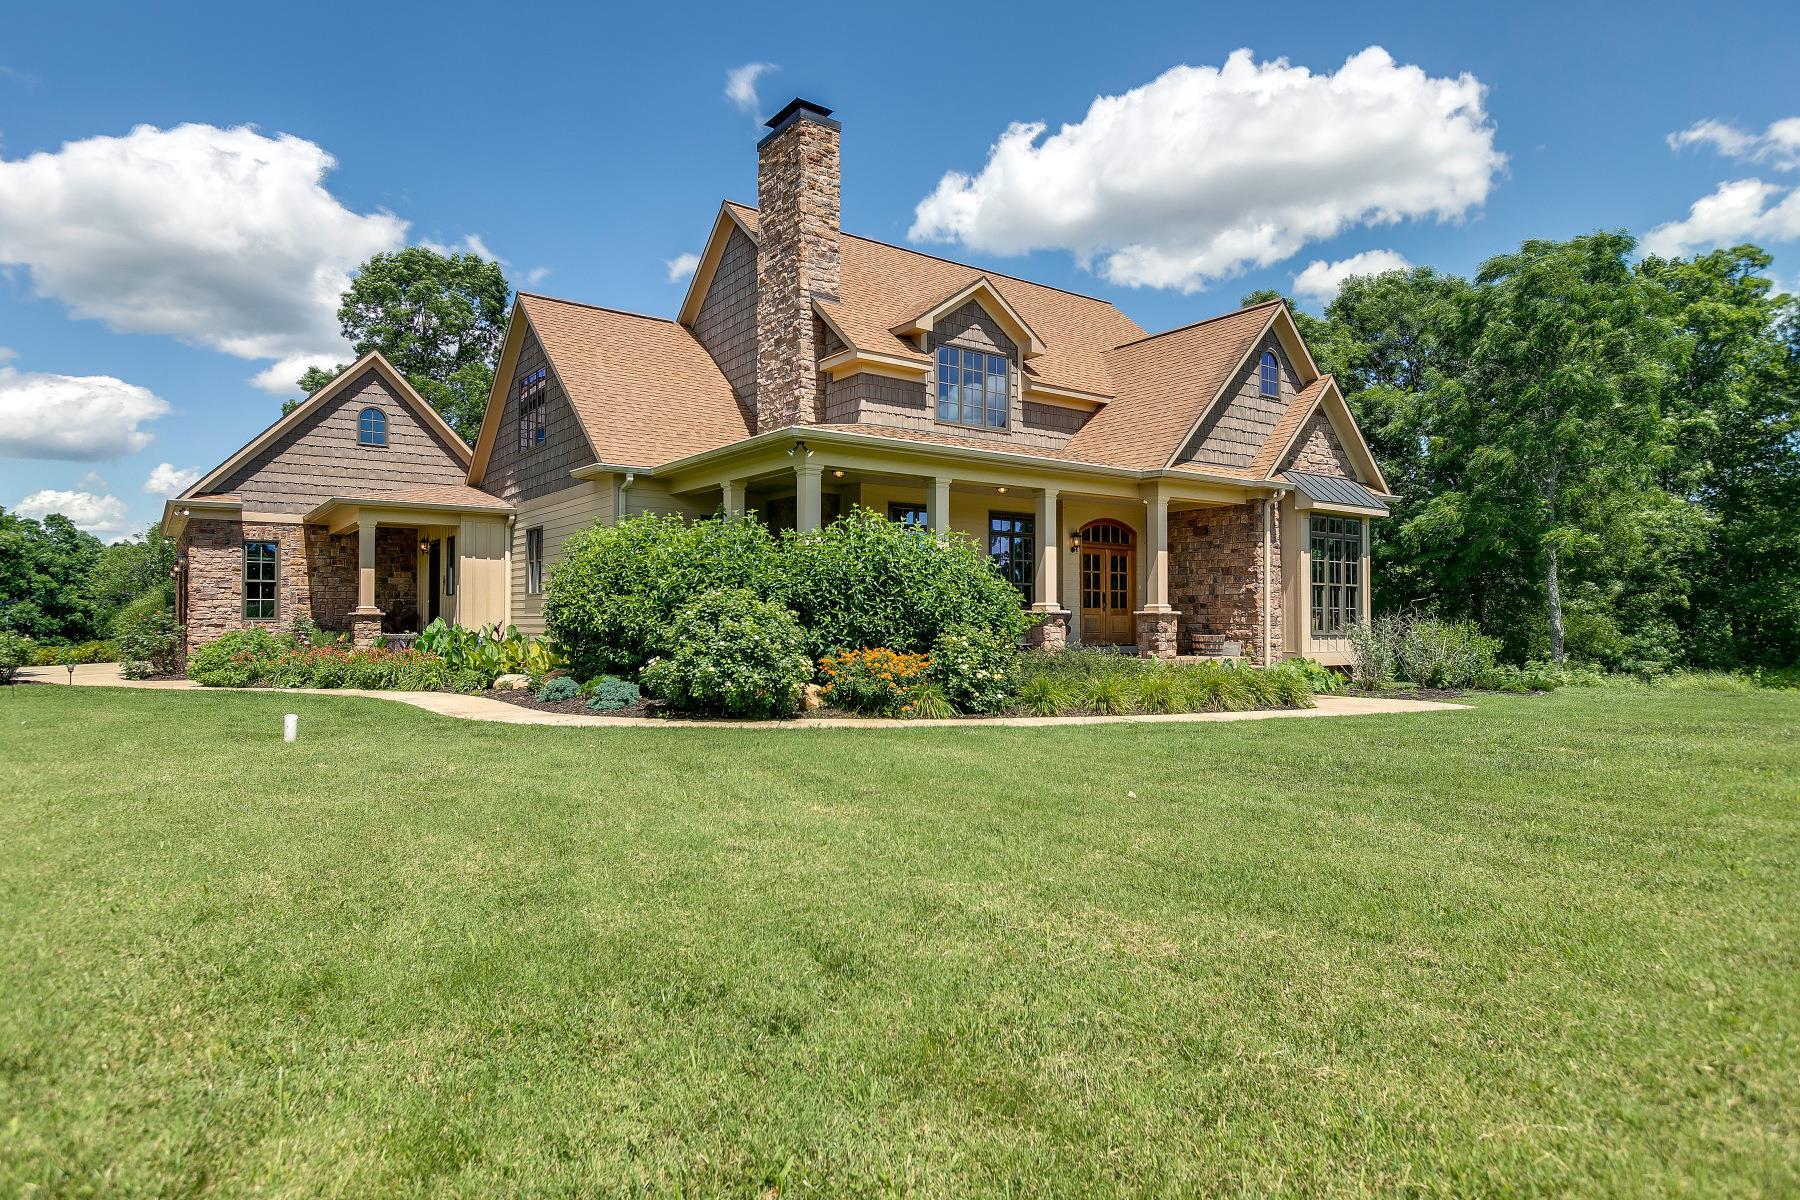 60 Walker Rd, Summertown, TN 38483 - Summertown, TN real estate listing